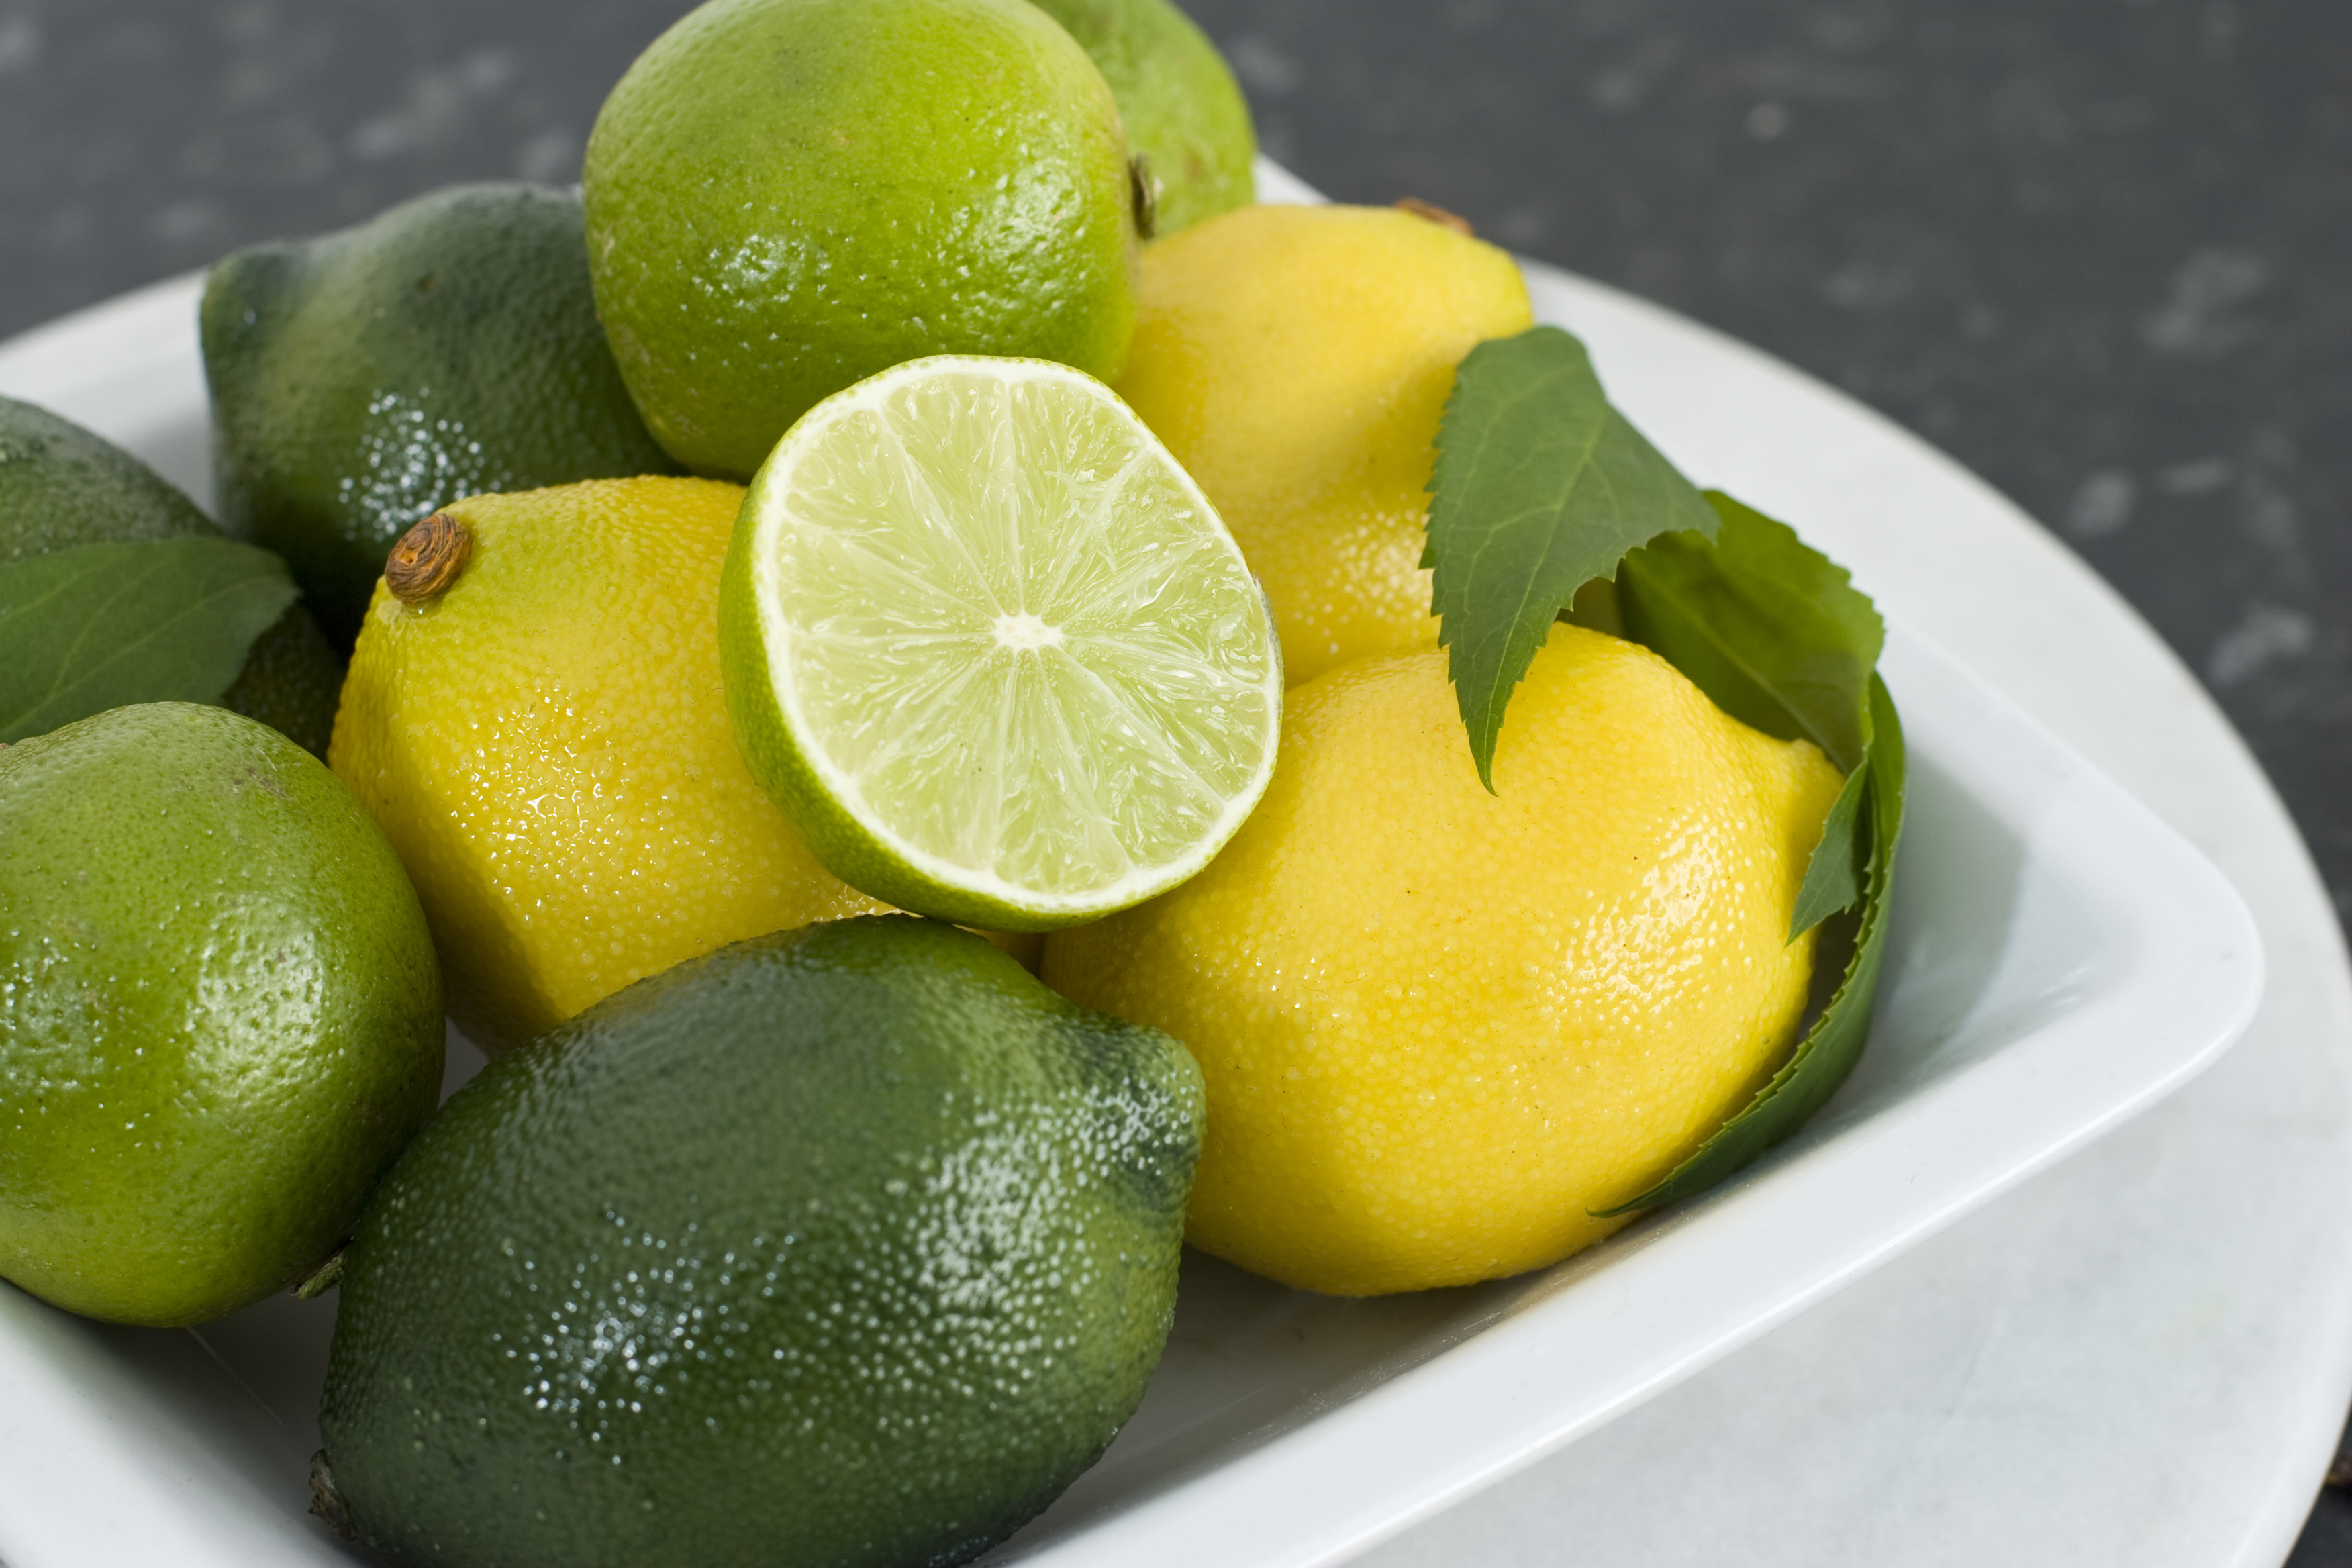 lemons vs limes Ten reasons why you should have warm lemon or lime water daily sunday, august 21, 2011 by: paul fassa tags: lemon juice, digestion, health news.